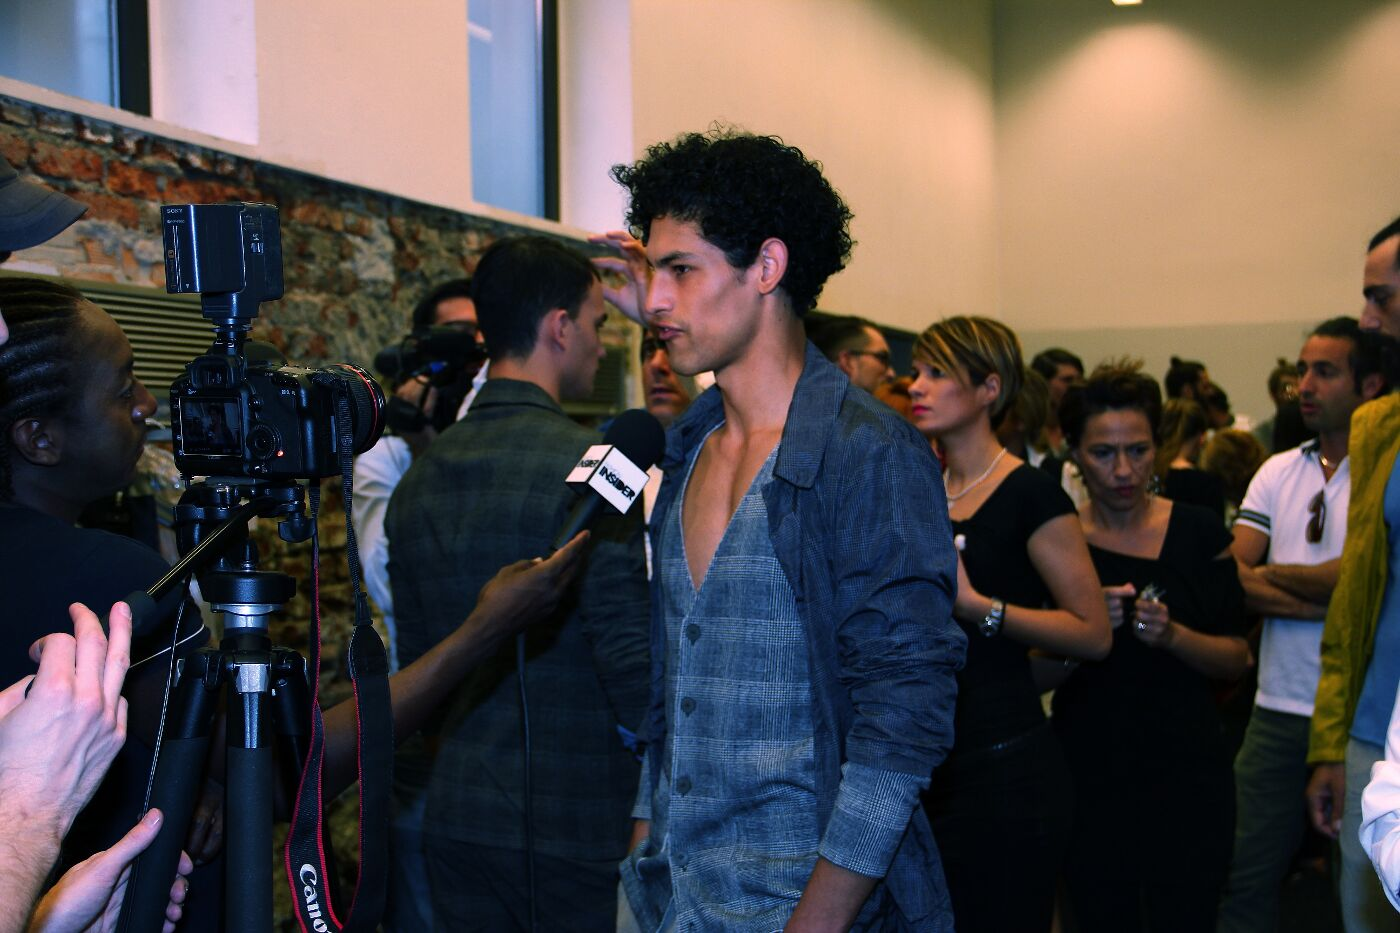 backstage-iceberg-2012-backstage-spring-summer-2012-milano-fashion-week-iceberg